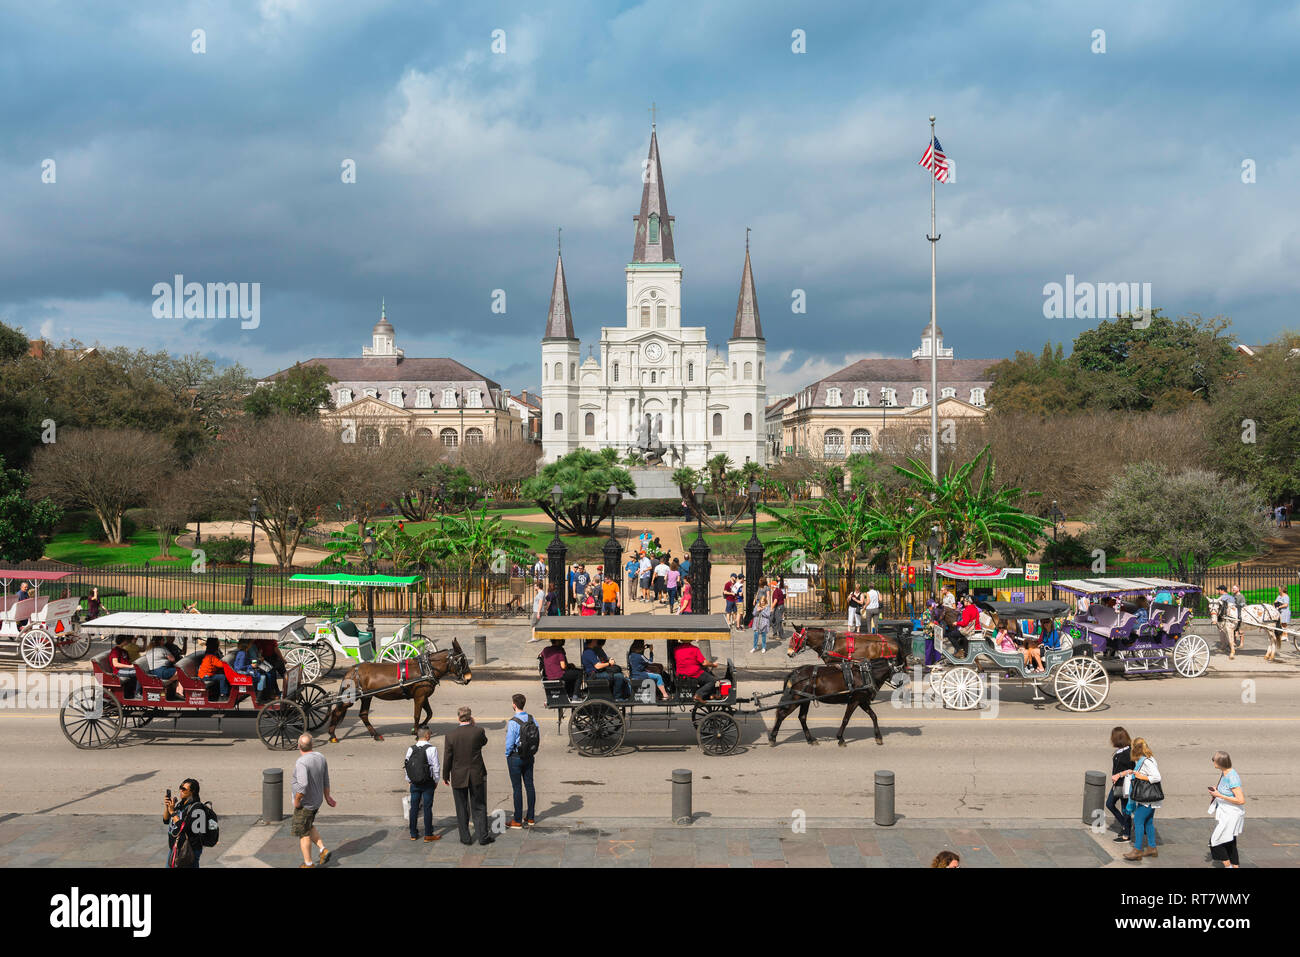 New Orleans Jackson Square, view across Decatur Street towards Jackson Square and the St Louis Cathedral in the center of the French Quarter, USA - Stock Image